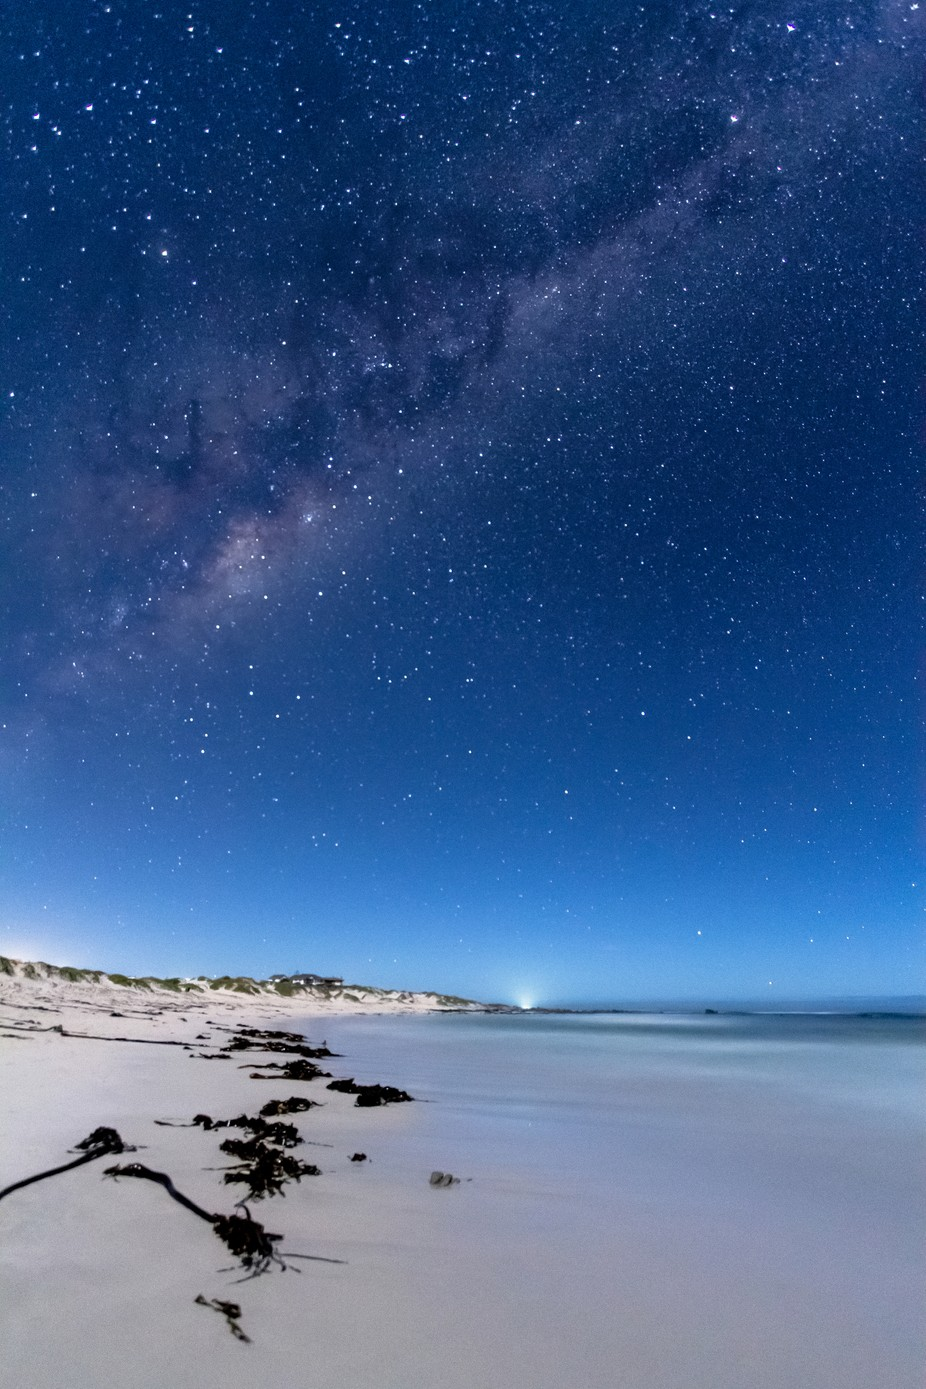 Pearly beach night lights by Cokies004 - Capture The Milky Way Photo Contest